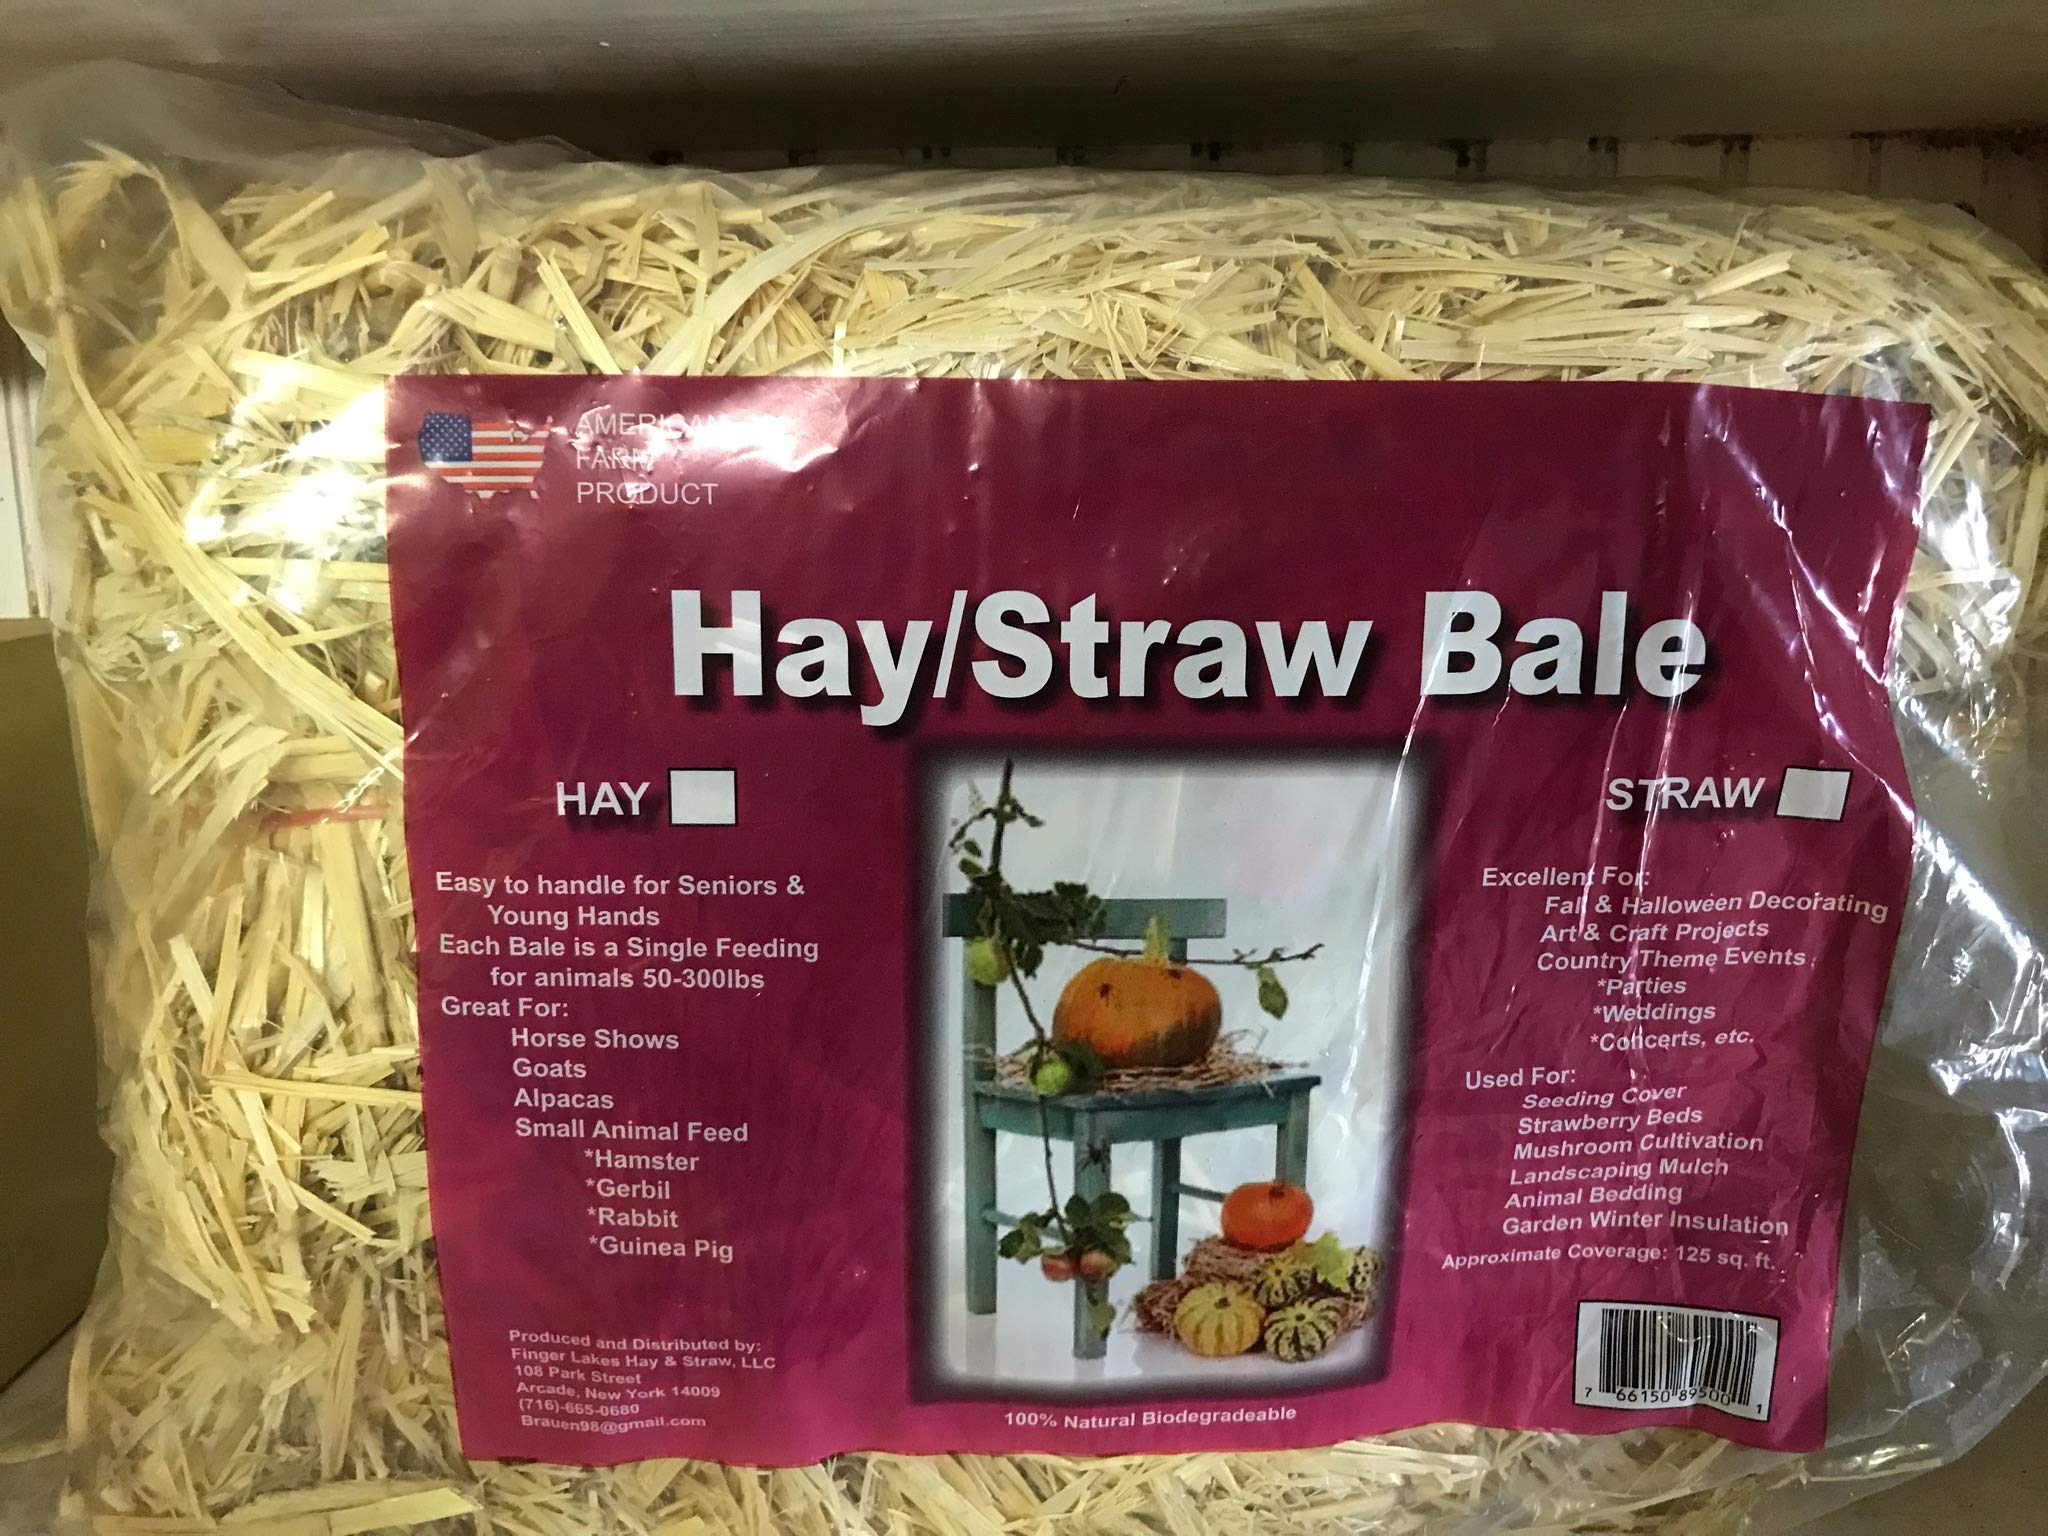 Hay Bale for Autumn Harvest Decoration, Hay Pet Food Signal Feeding for Animal 50-300LBS